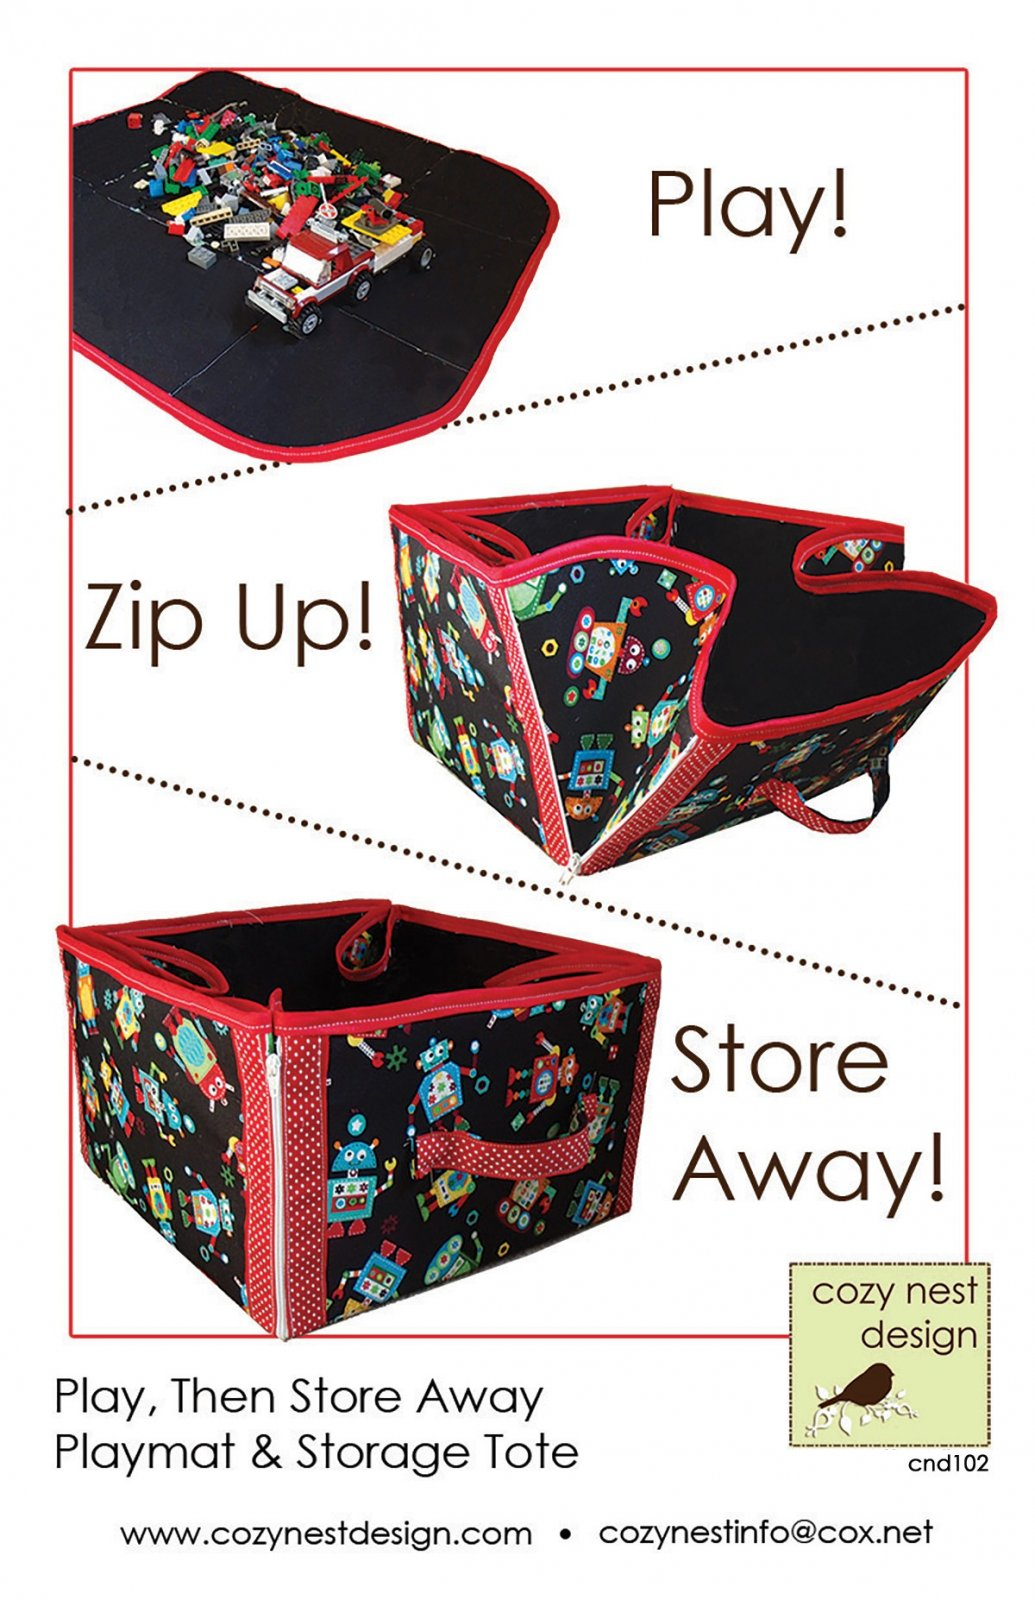 Play Then Store Away Playmat & Storage Tote